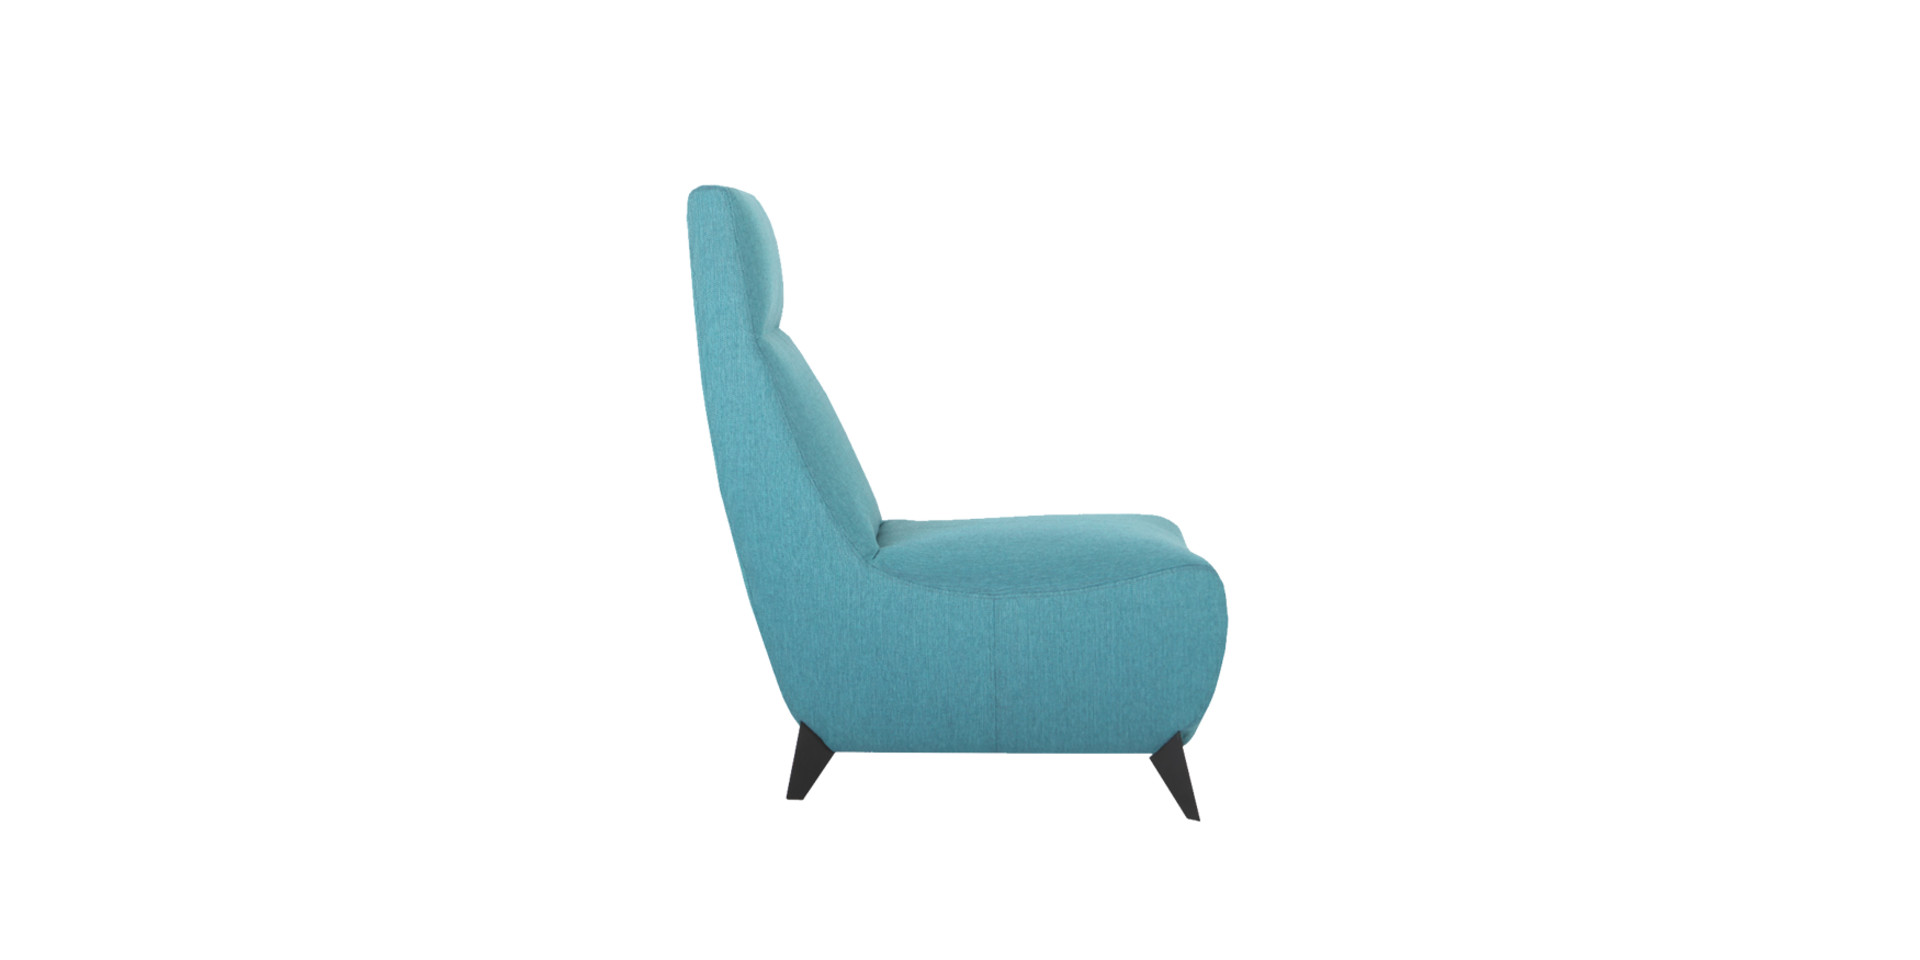 sits-julius-fauteuil-armchair_sony7_turquoise_3